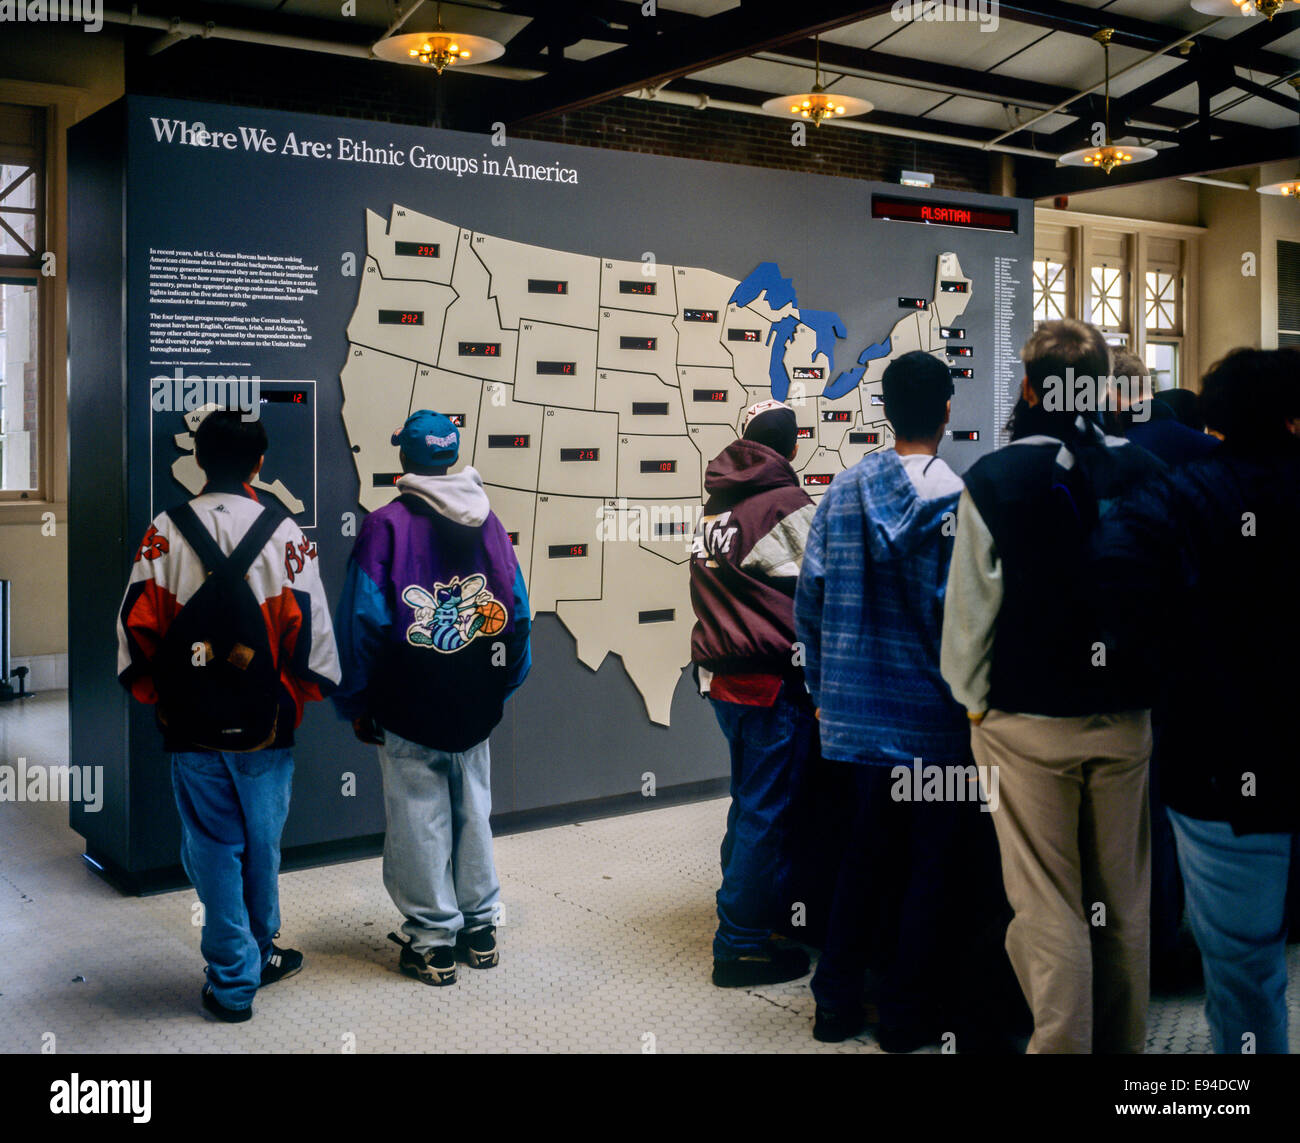 Students by U.S. Ethnic groups map Ellis Island Museum New ... on history us map, the great depression us map, california us map, buffalo us map, new orleans us map, hudson river us map, new york city us map, brooklyn us map, united nations us map, manhattan us map, the statue of liberty us map, gettysburg us map, cape may us map, pearl harbor us map, war of 1812 us map, england us map, washington us map, united states us map, immigration us map,